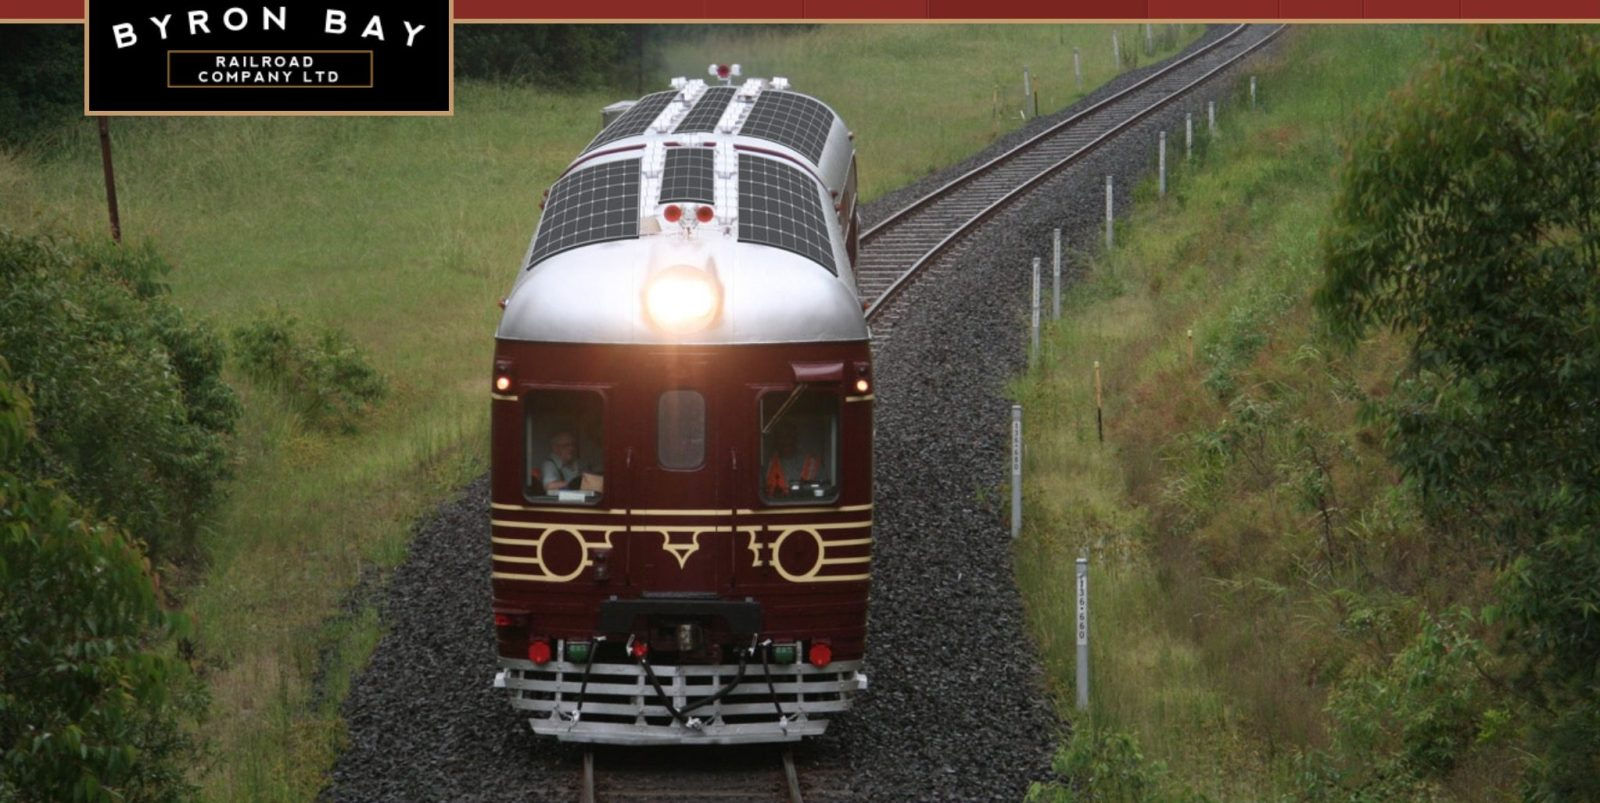 'World's First' Solar-Powered train to begin operation in Australia